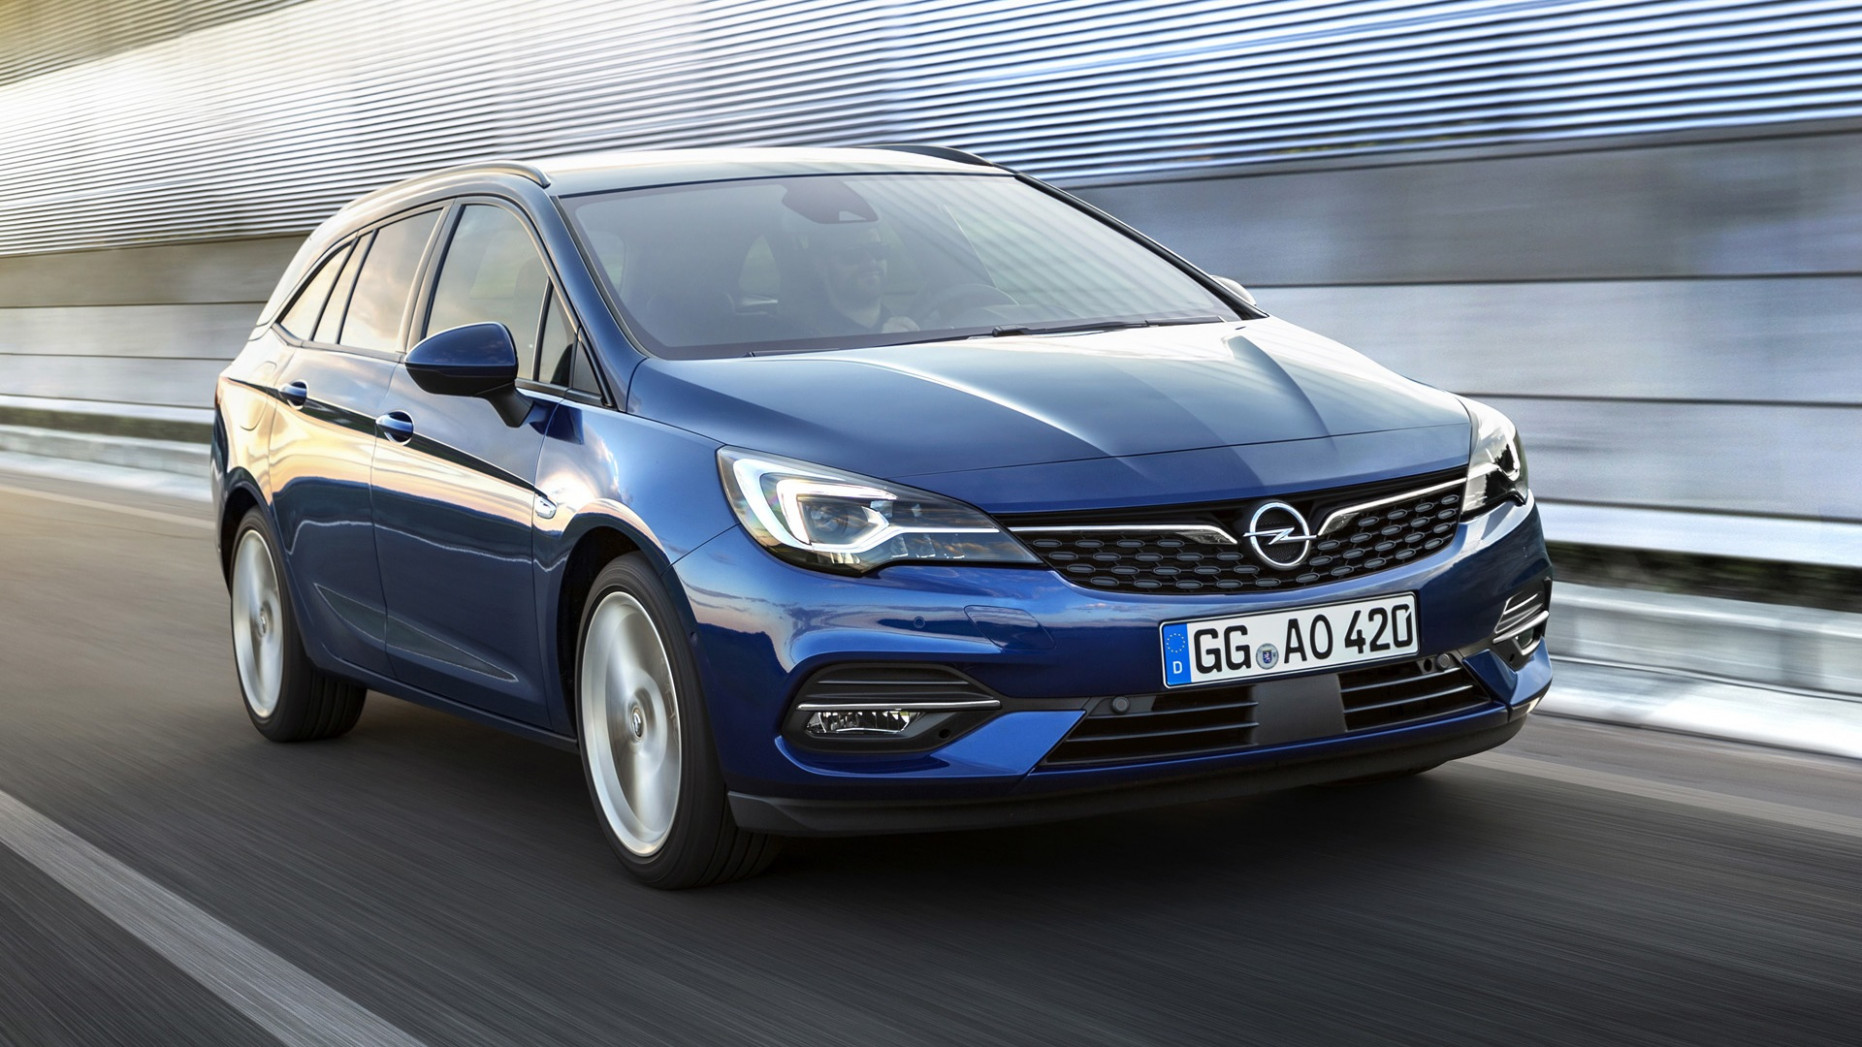 opel astra k sports tourer 2022 - cars review : cars review